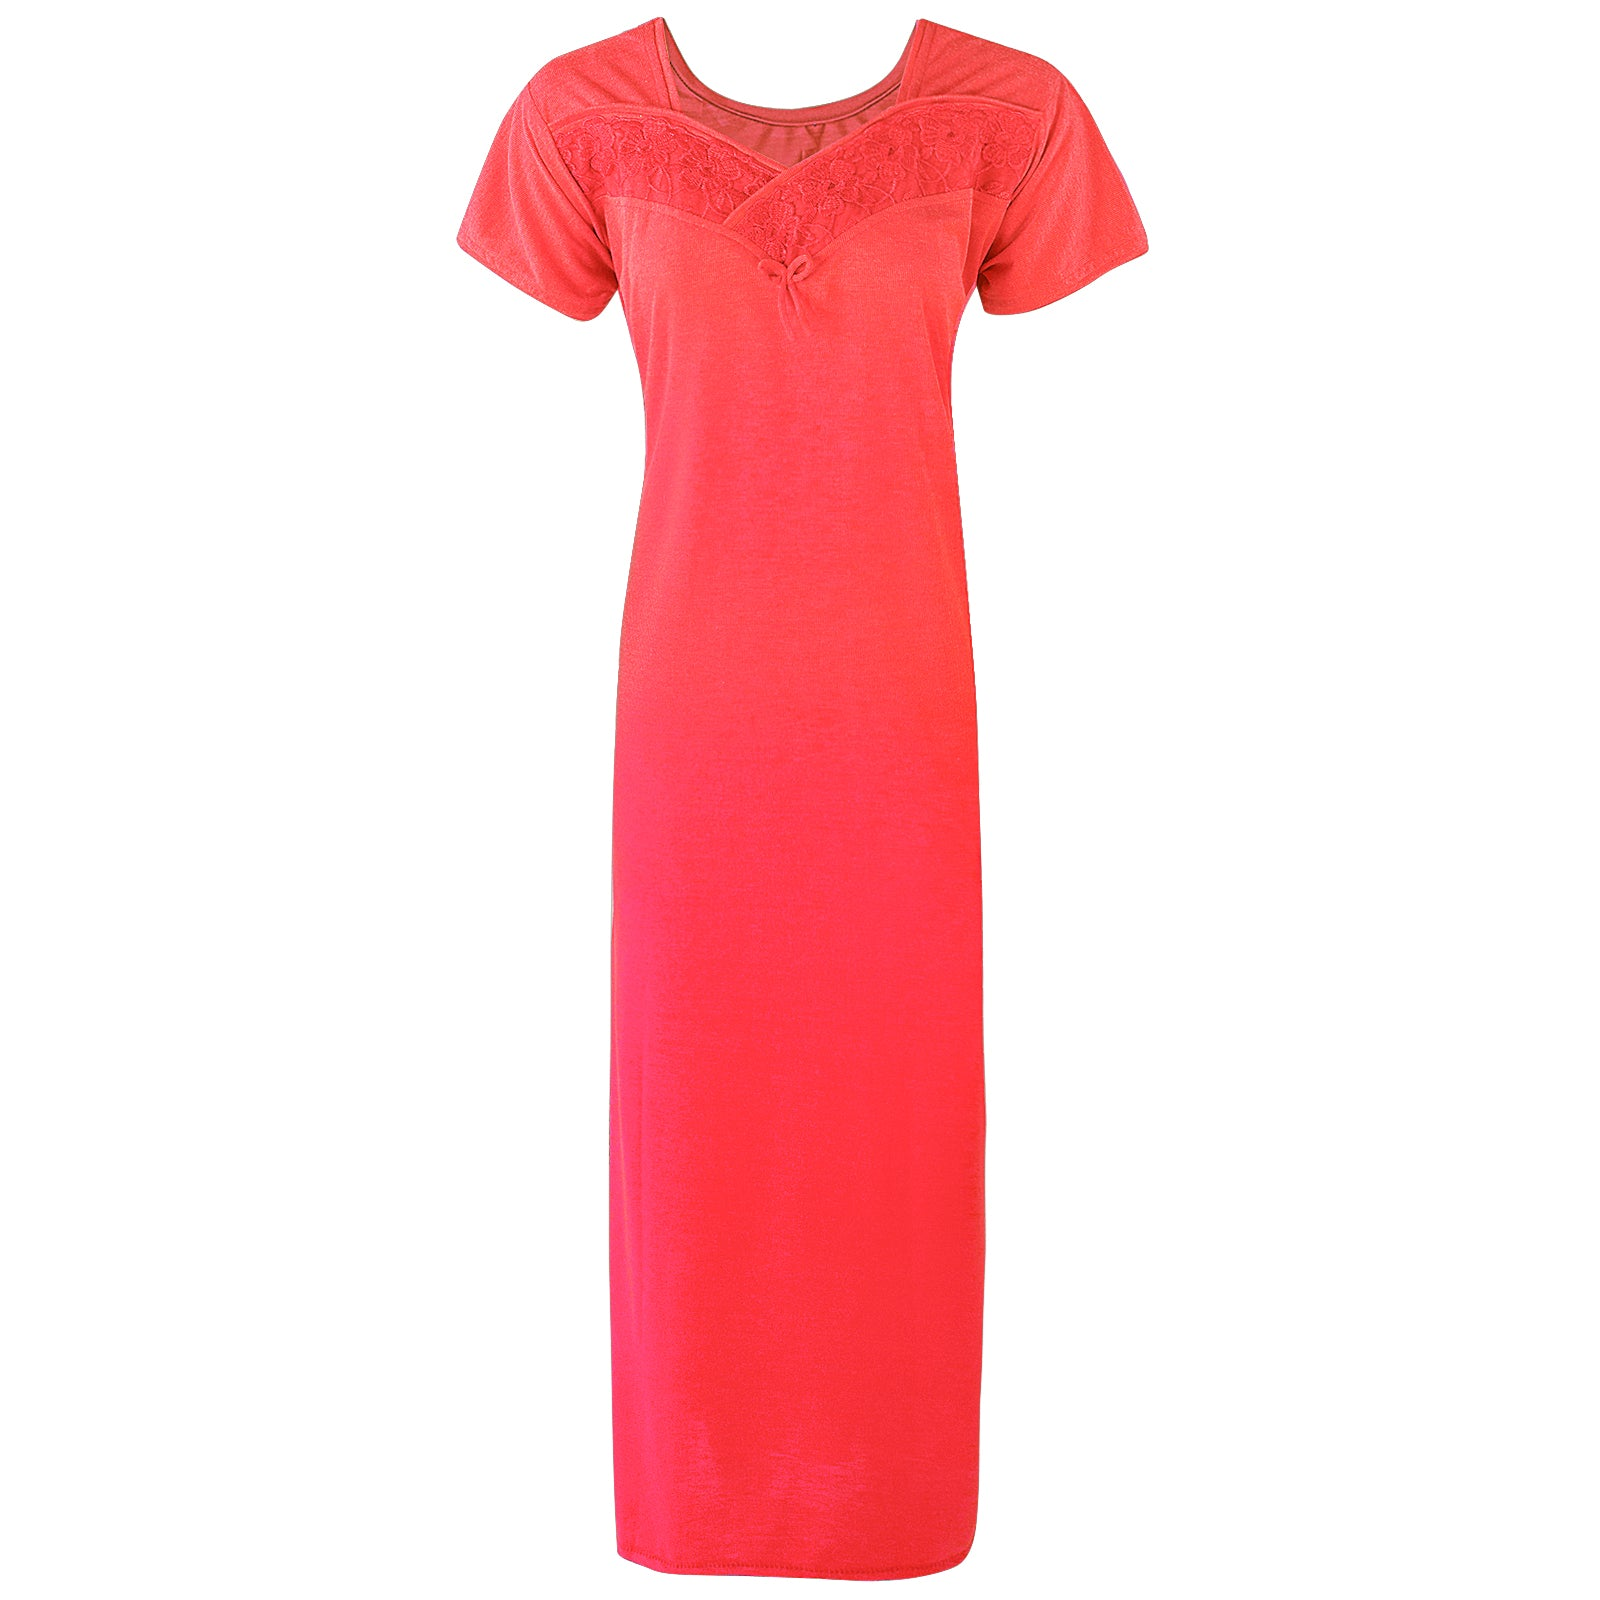 Colour: Coral Cotton Blend Comfy Jersey Nightdress Size: 12-16